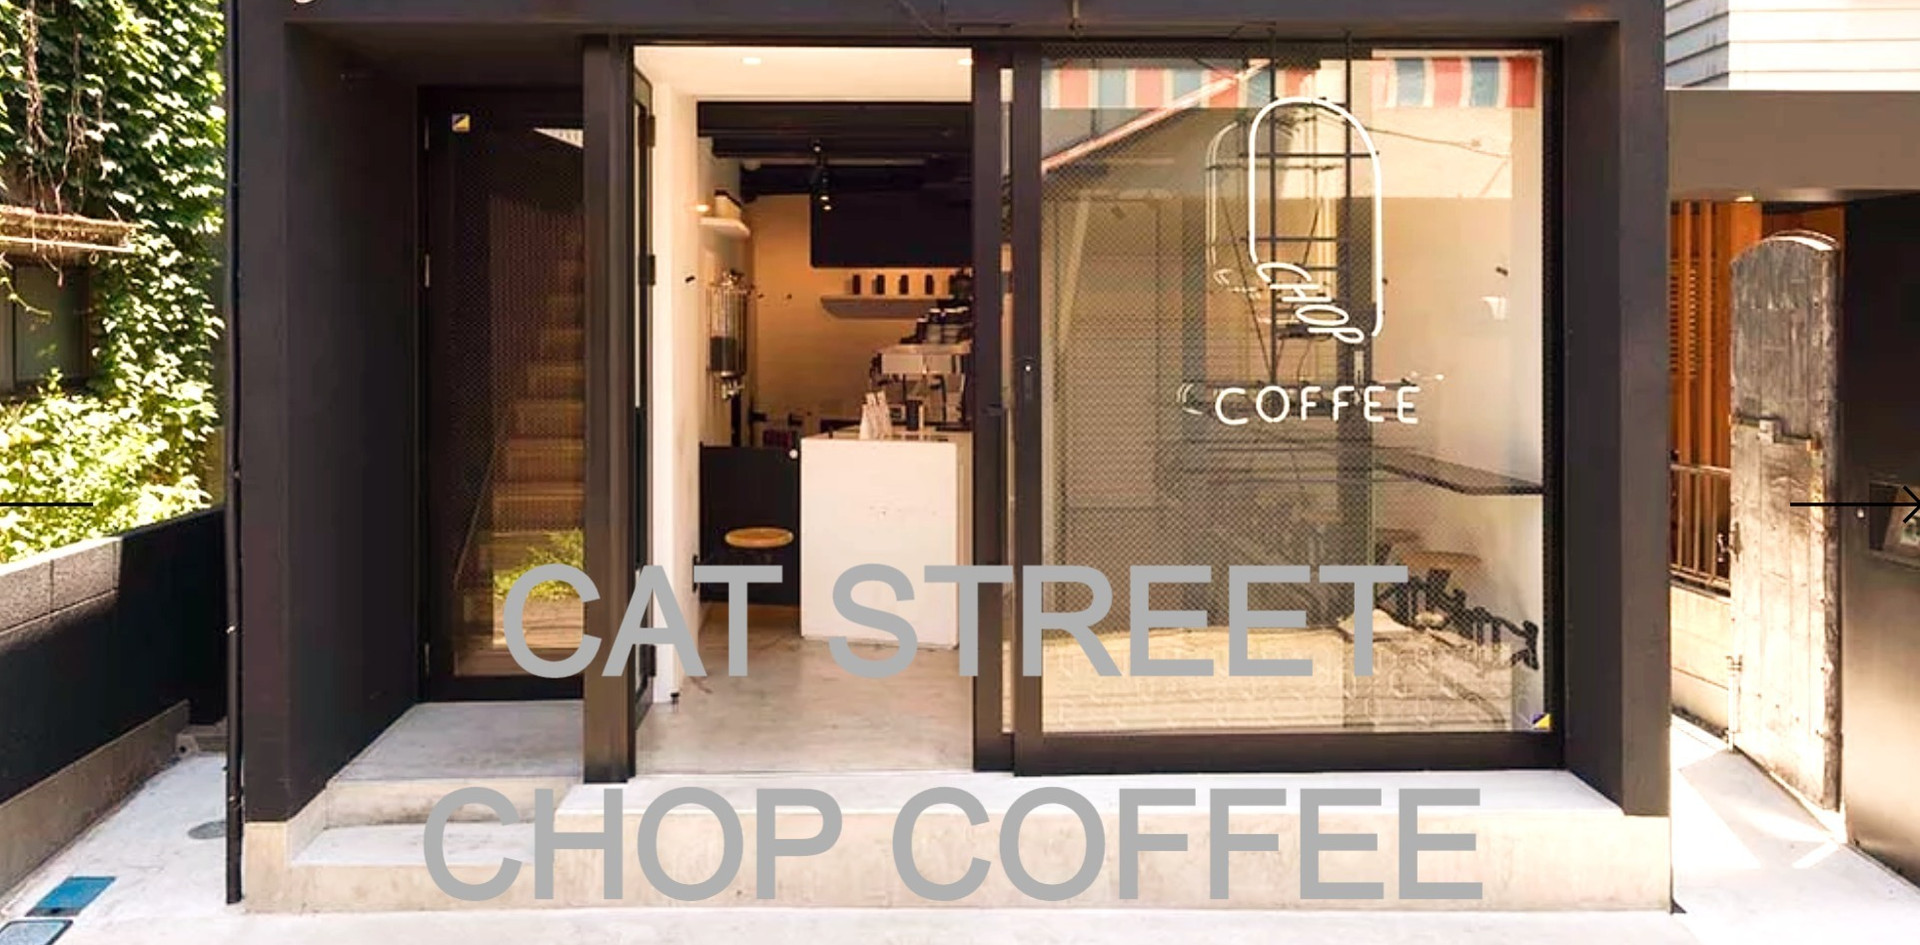 CHOP COFFEE @ Cat Street